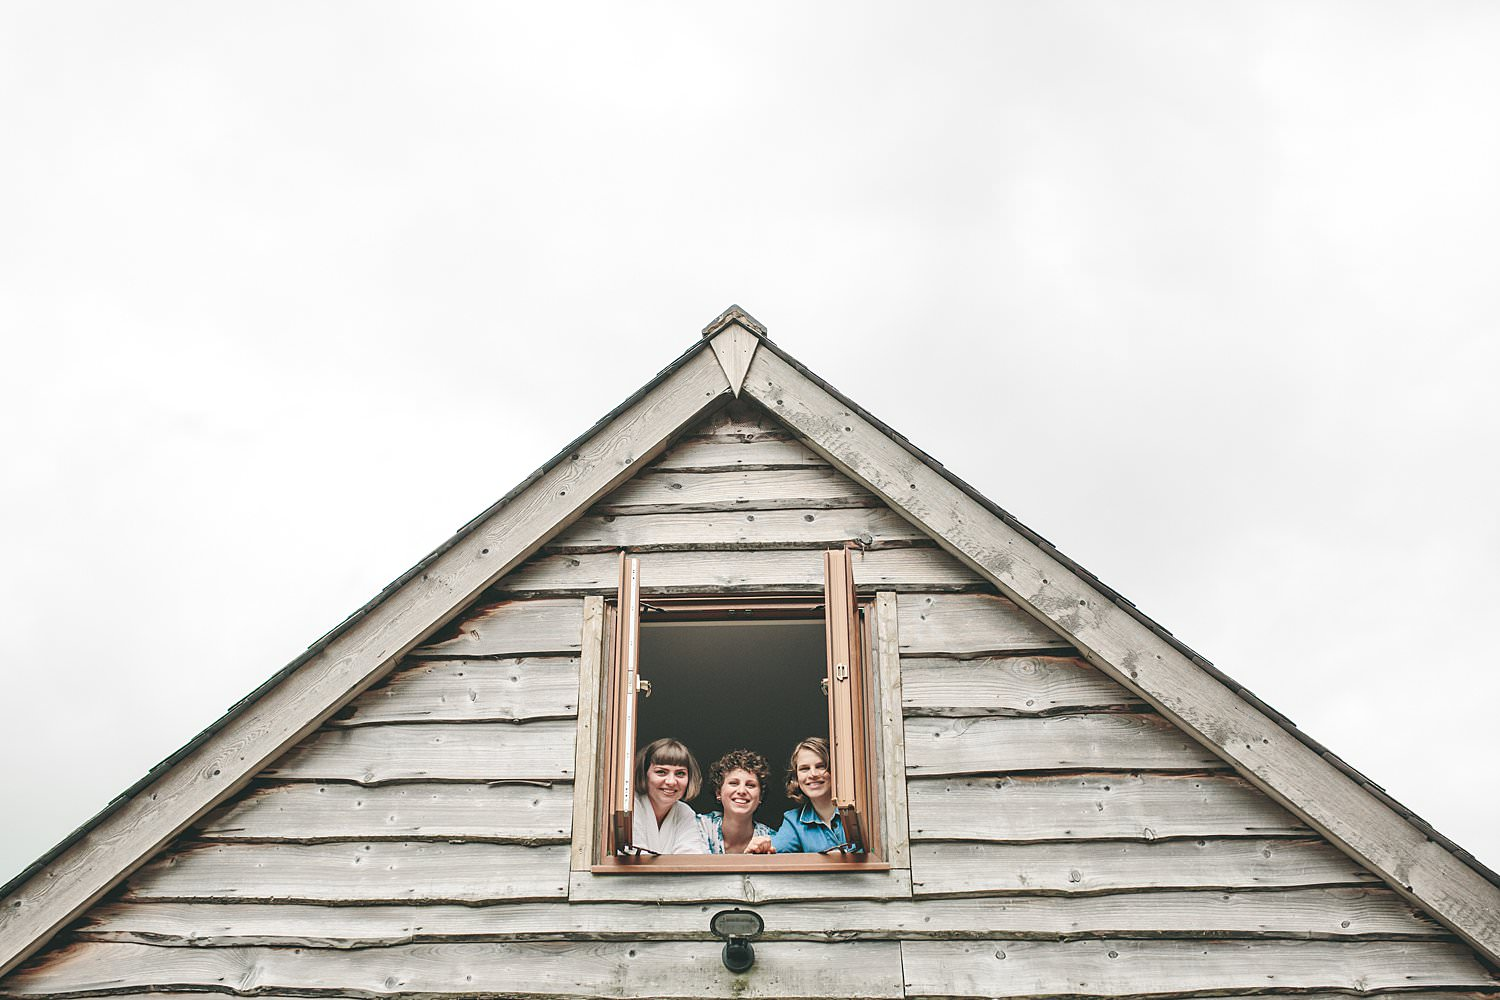 Cornwall wedding photographer Devon Shropshire UK